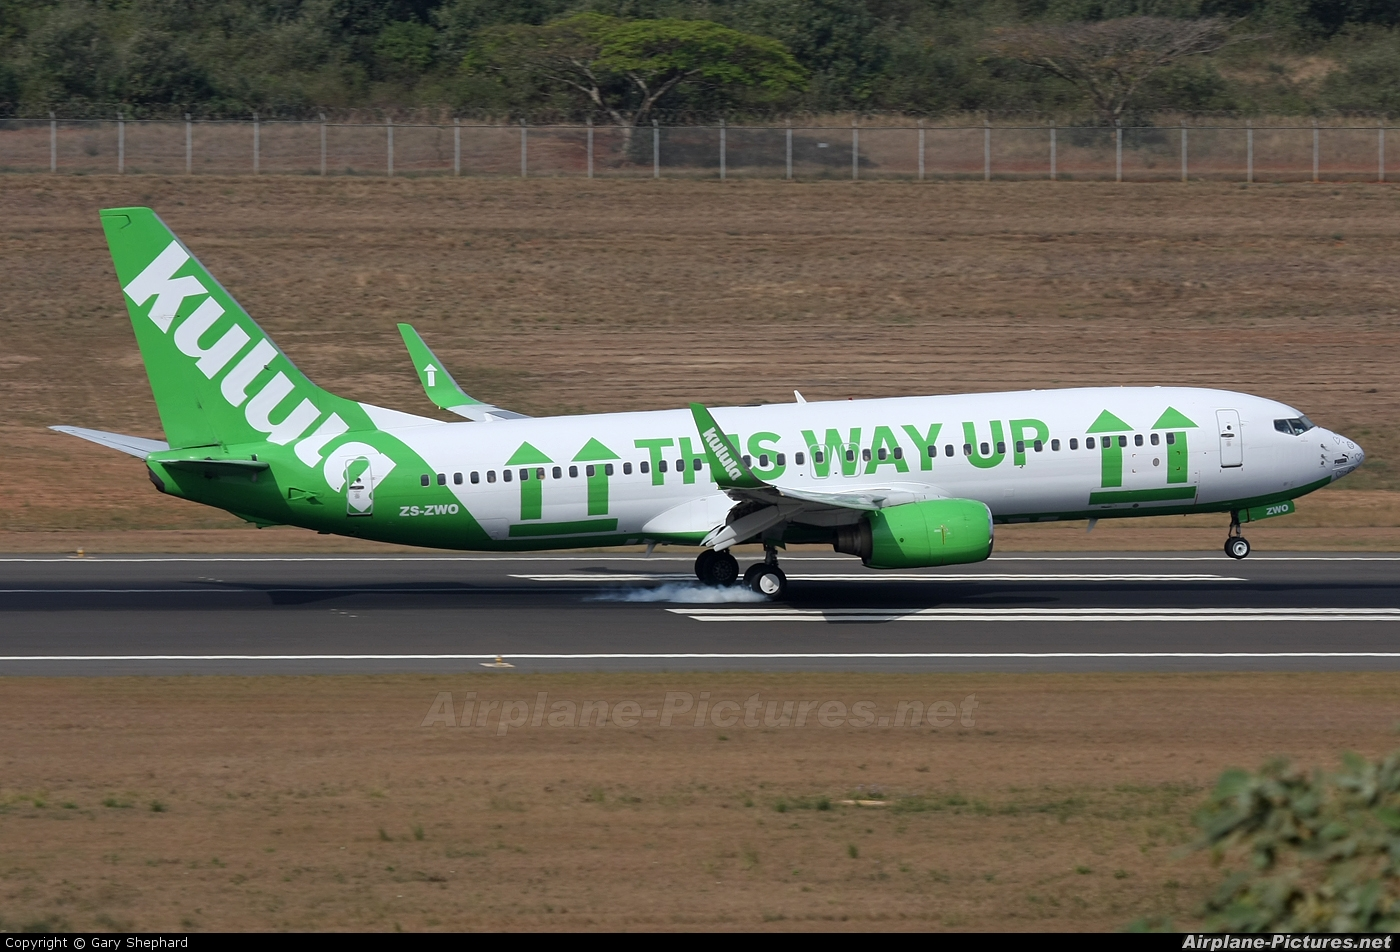 kulula com Kulula 181k likes for affordable flights, car hire, hotels and holiday packages visit kululacom or call us on 0861 kulula (585852.